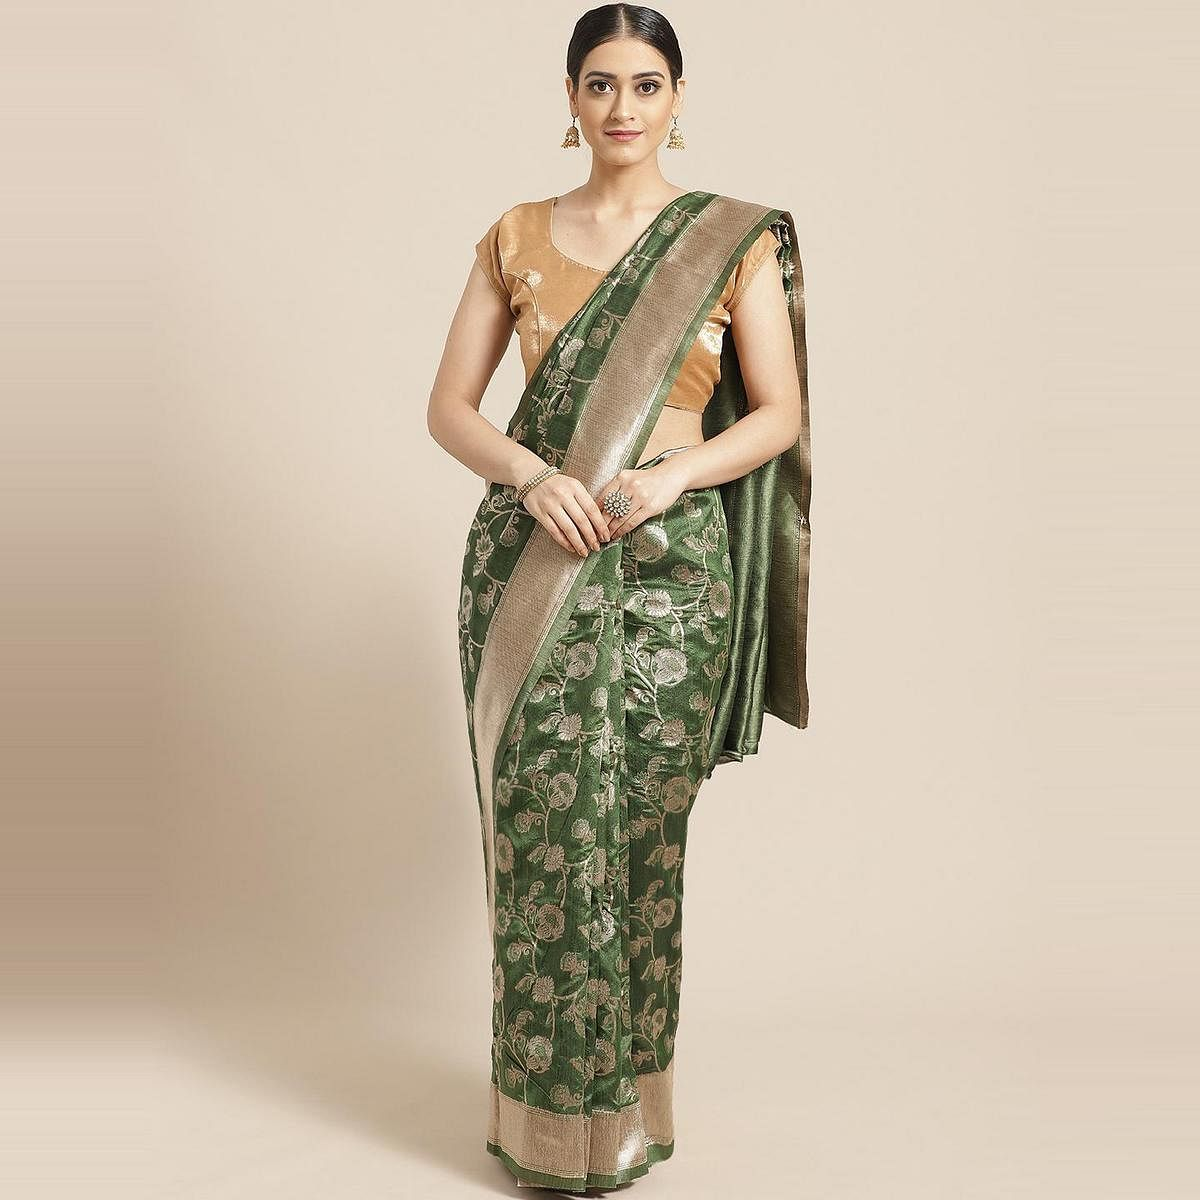 Pache Women's Green Floral Woven Design Art Silk Banarasi Saree With Unstitched Blouse Piece